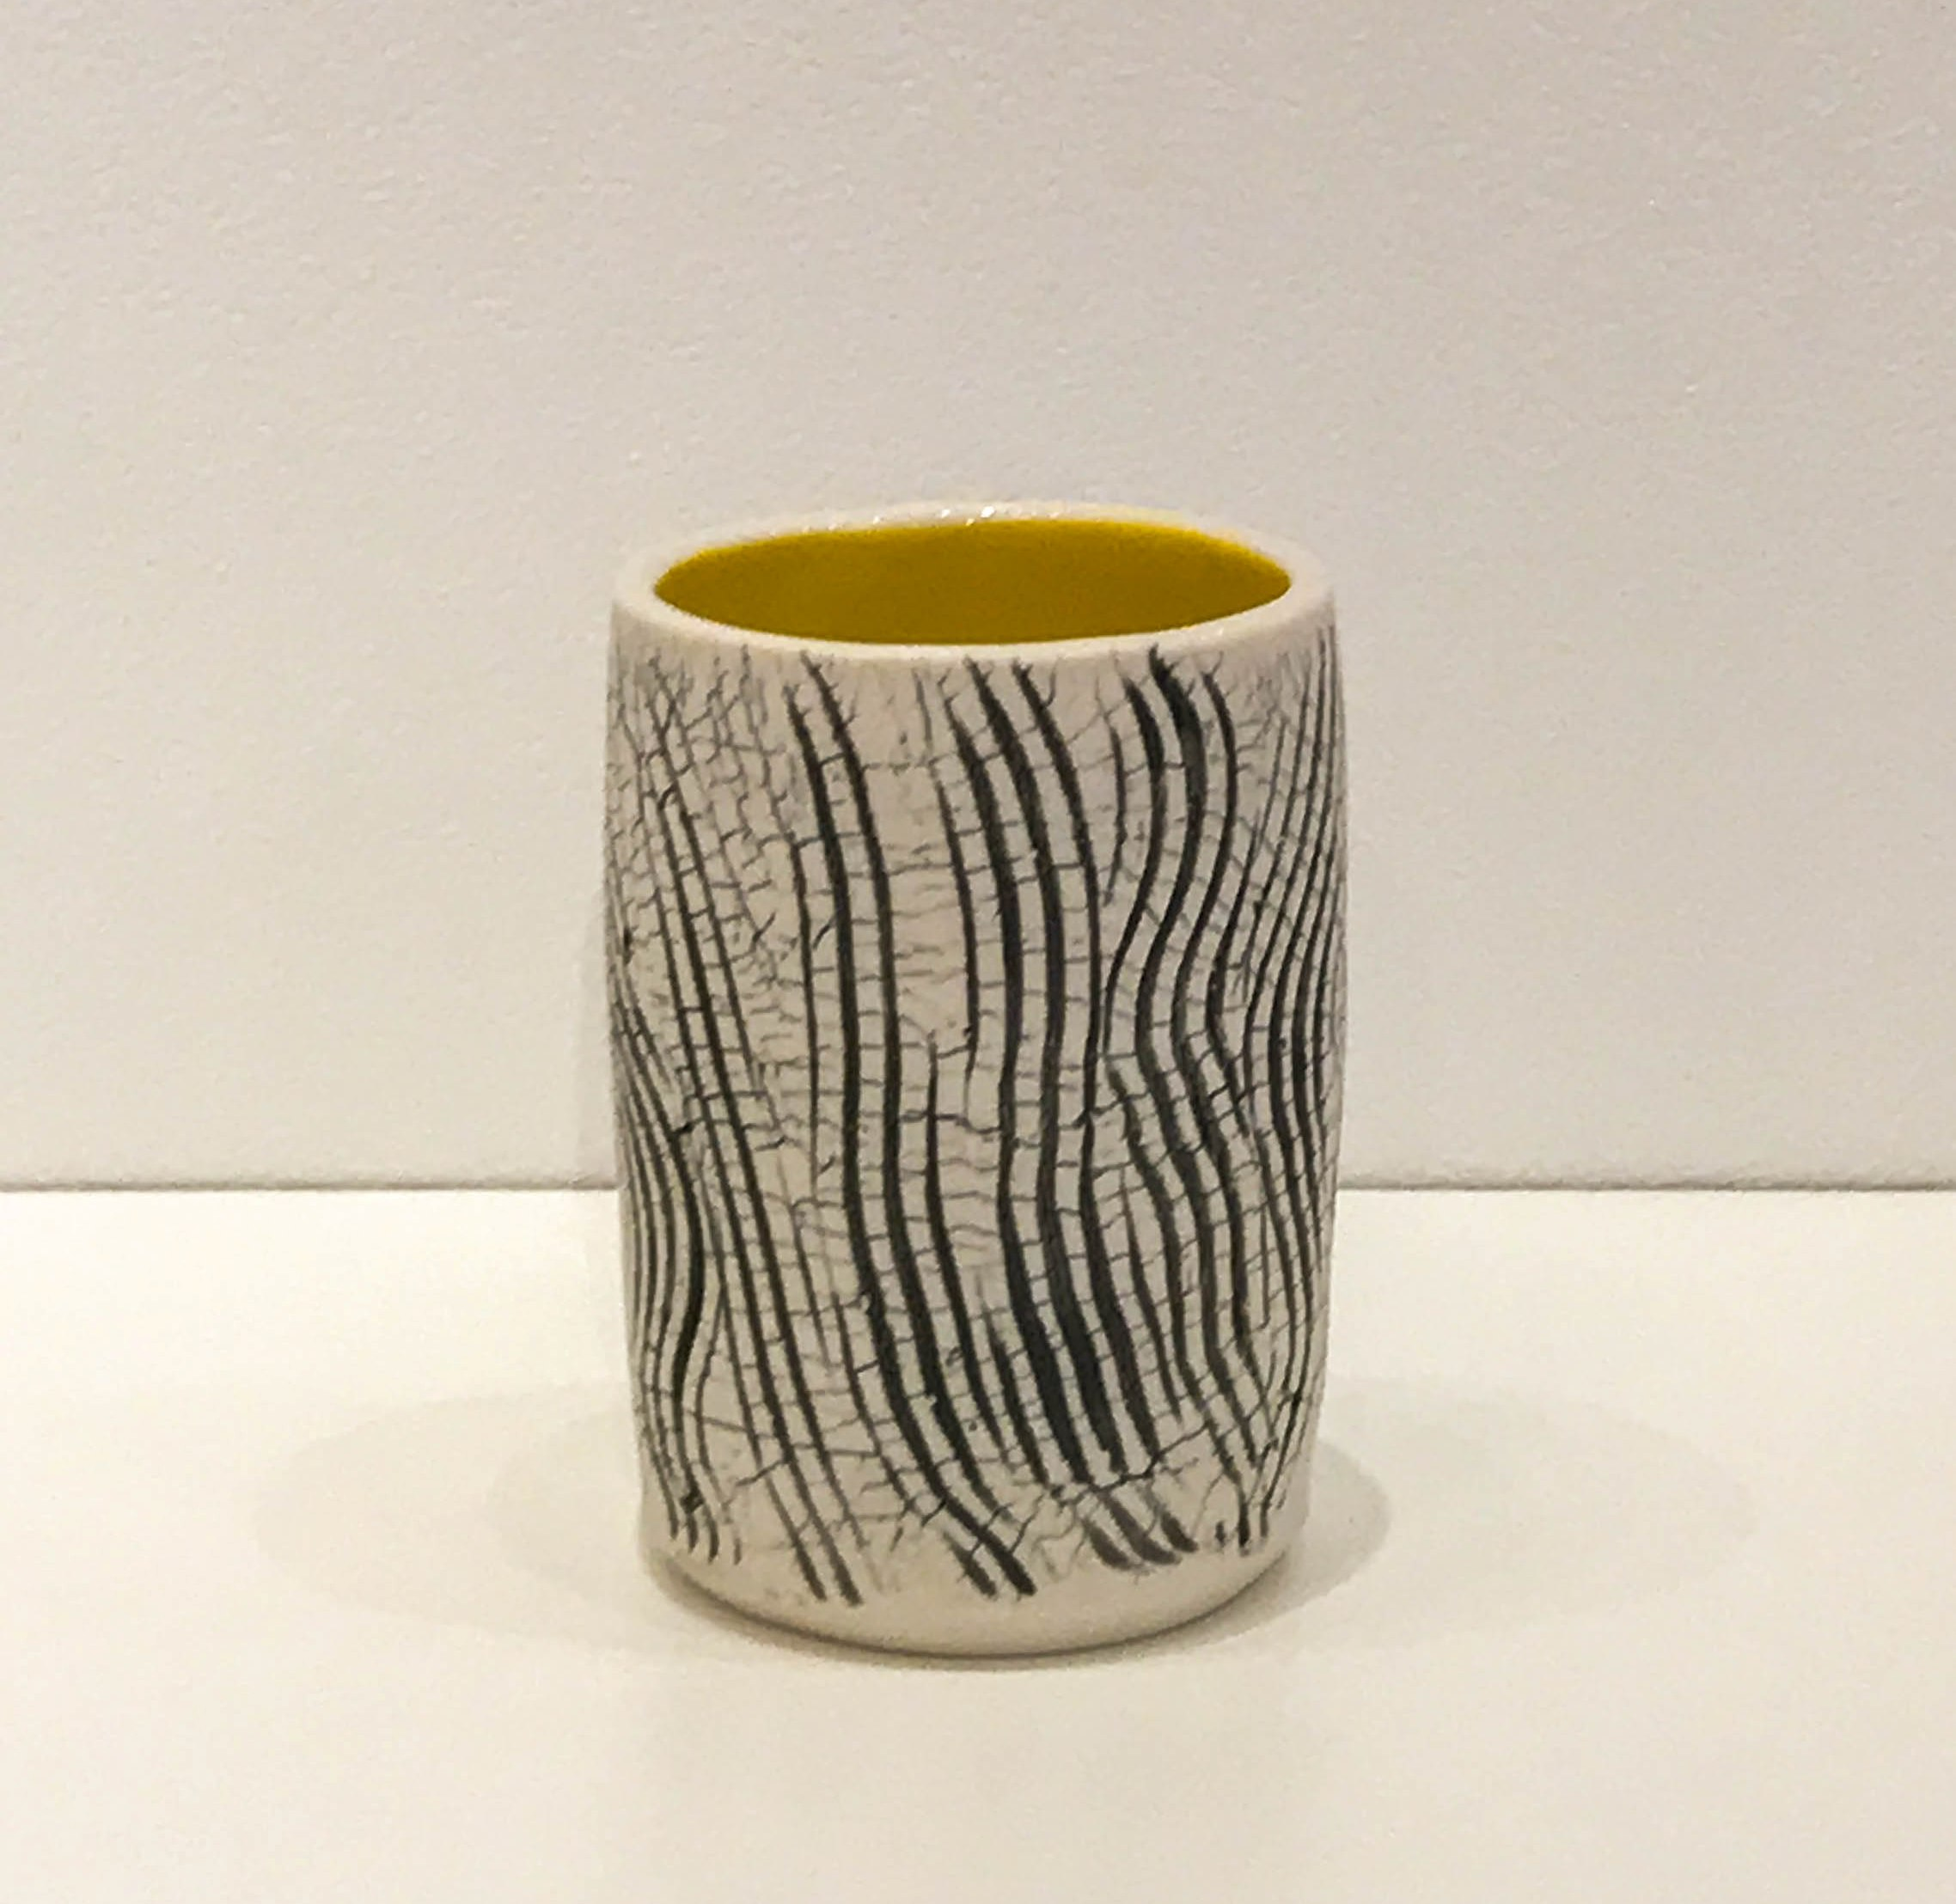 "Wheel-thrown and hand-altered tumbler with black crackle and yellow glazed interior, 4 1/4"" x 3"" x 3"", sold"